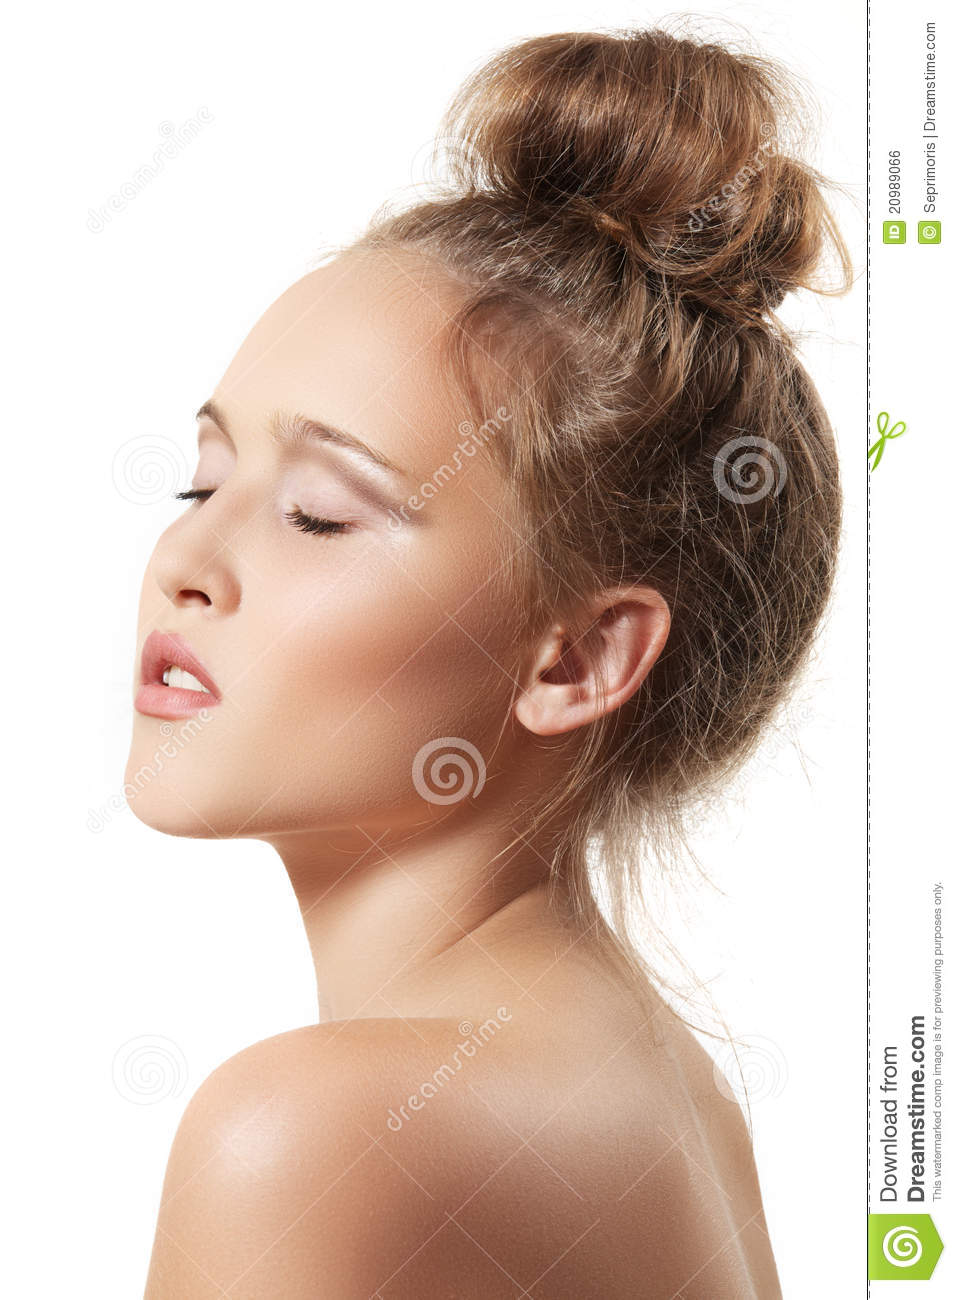 spa beauty model with clean skin and bun hairstyle royalty free stock image image 20989066. Black Bedroom Furniture Sets. Home Design Ideas